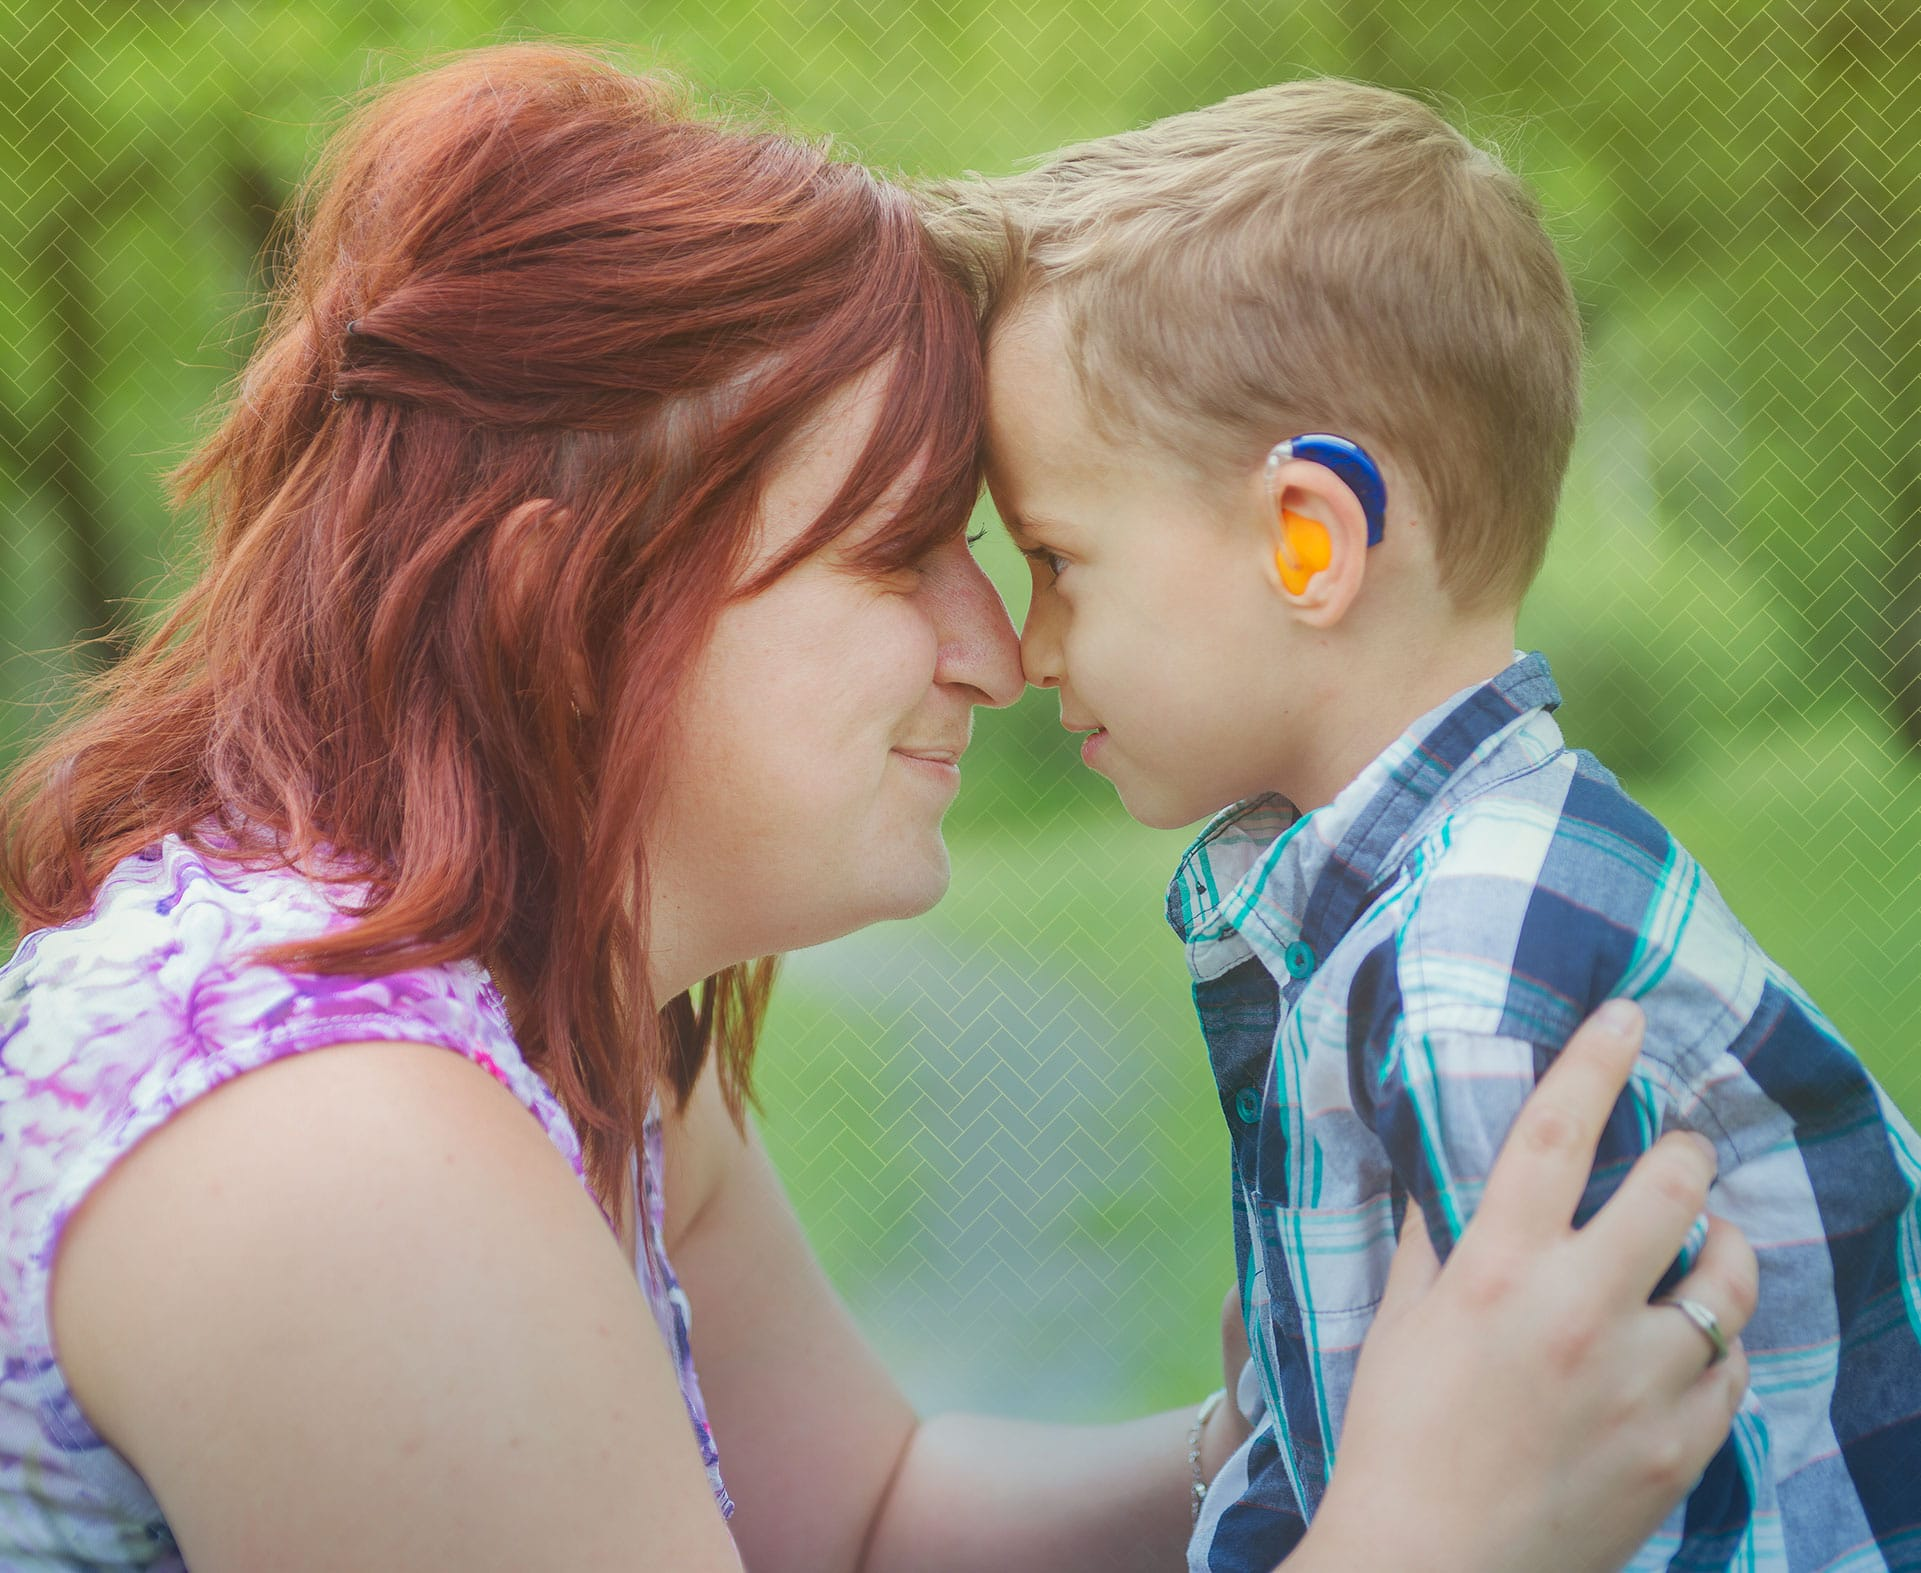 Woman performing hongi with young boy wearing a hearing aid